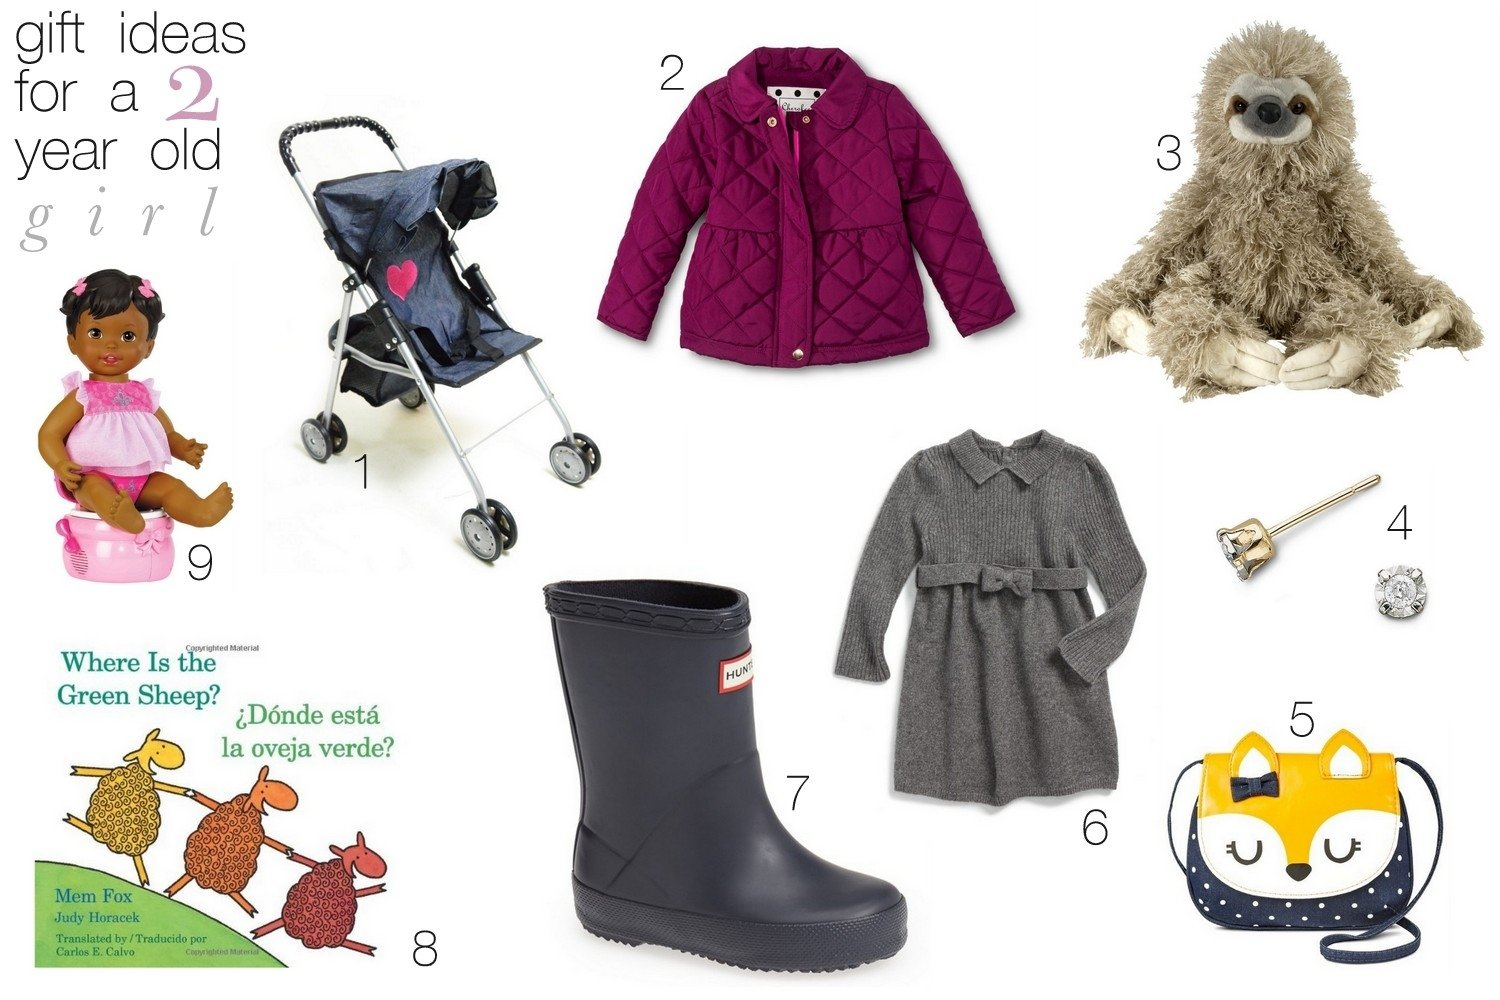 10 Great Gift Ideas For A 14 Year Old Girl a little bit of lacquer gift ideas for a two year old girl 5 2020